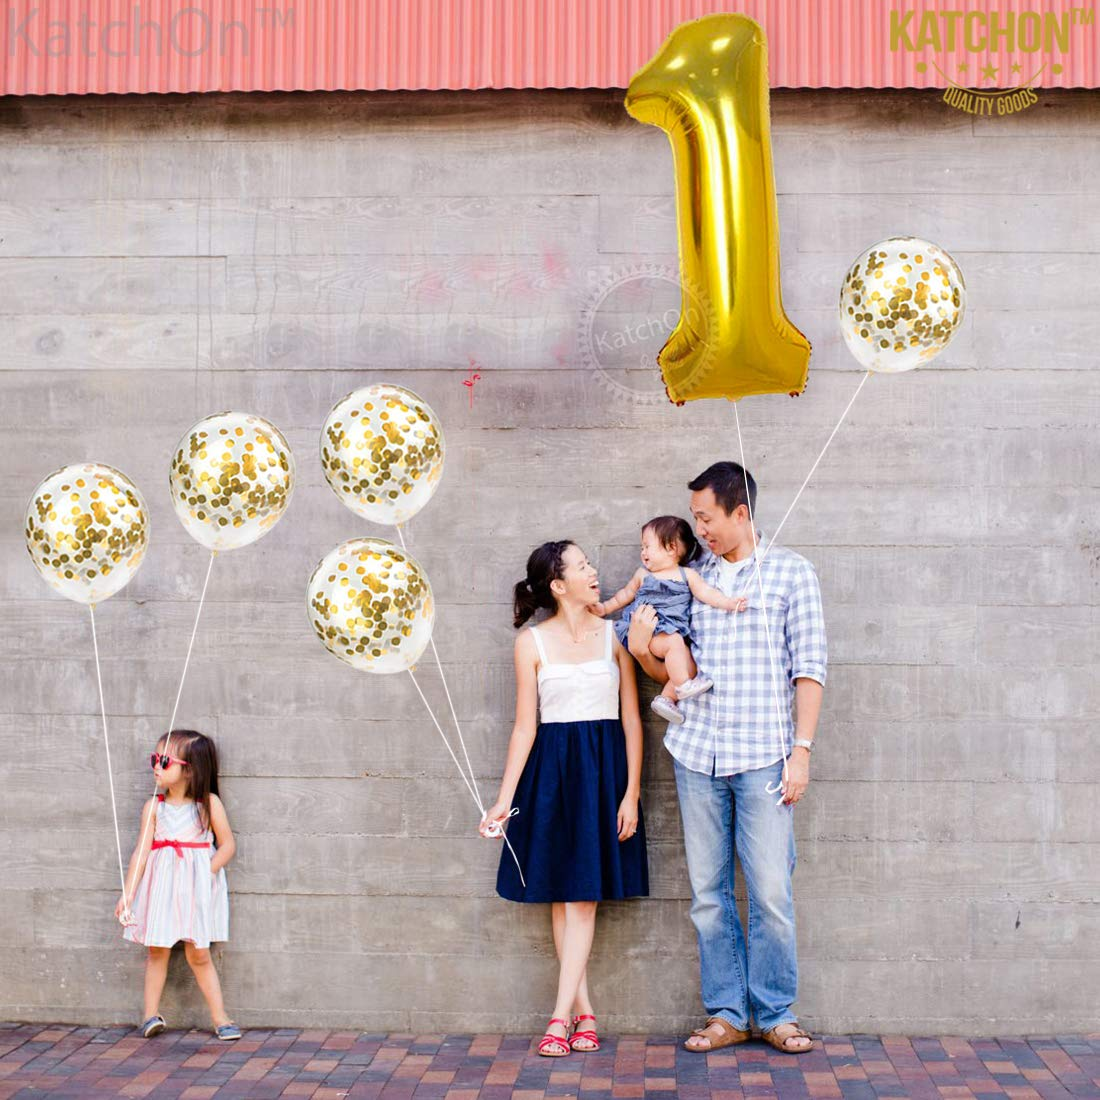 Baby Shower Wedding Number 1 and Gold Confetti Balloon 32 Foot Balloons String KatchOn Winner Large First Party Supplies for Engagement Anniversary 1st Birthday Party Decorations